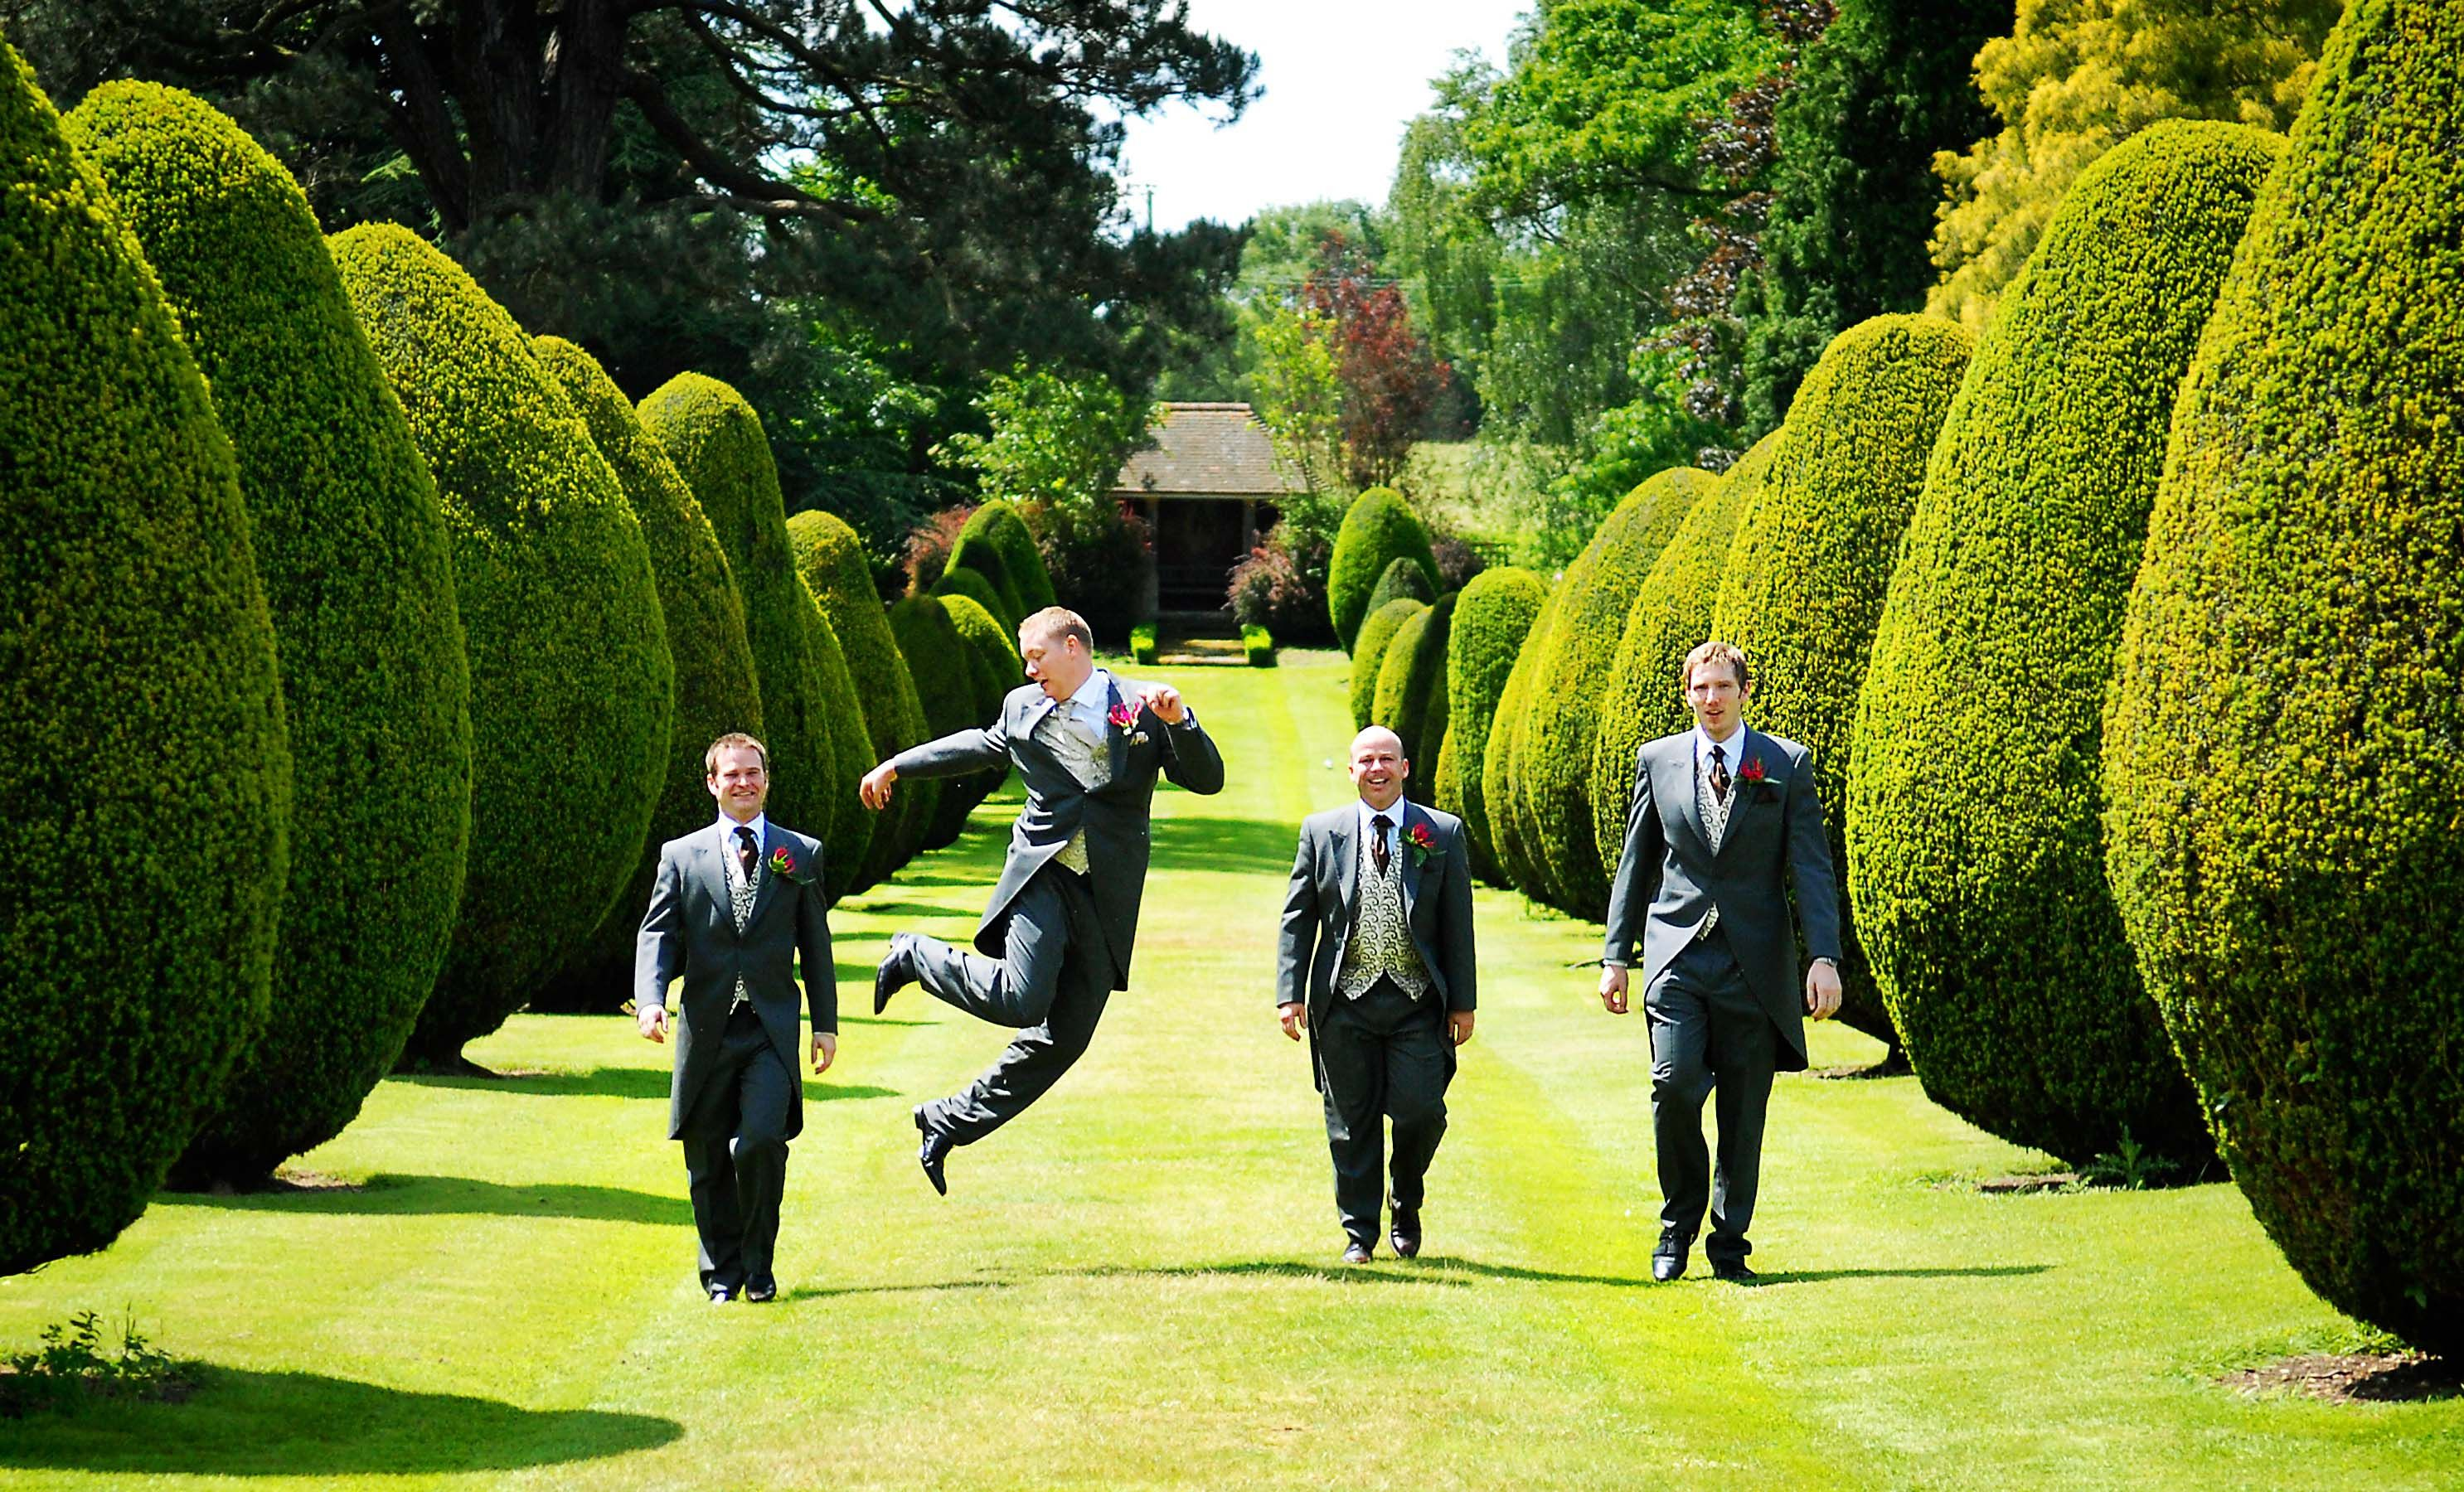 The Elvetham Wedding Venue in Hampshire (With images ...